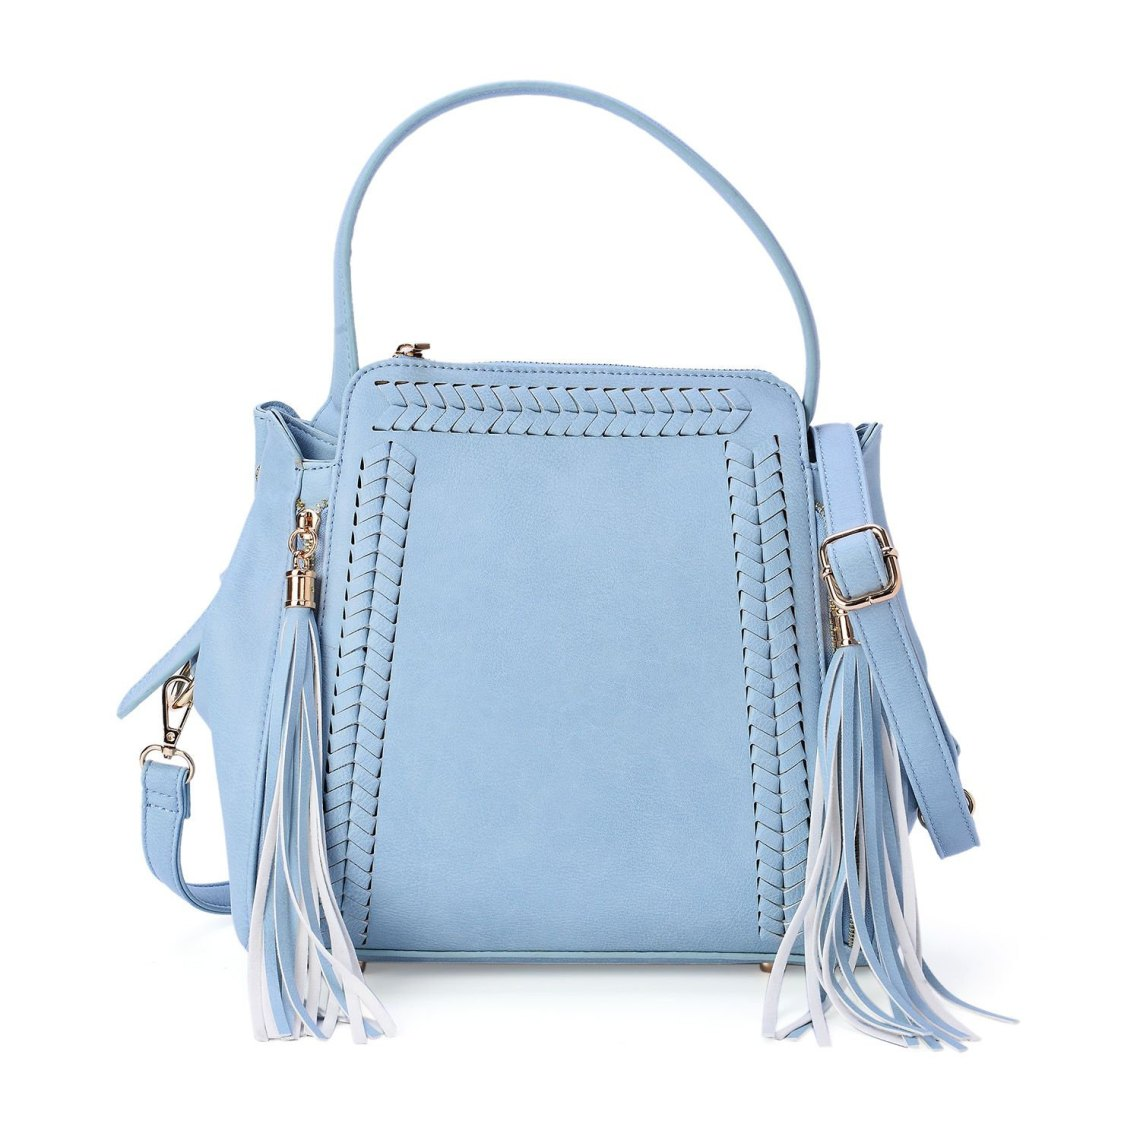 J Francis - Sky Blue Vegan Leather Shoulder Bag